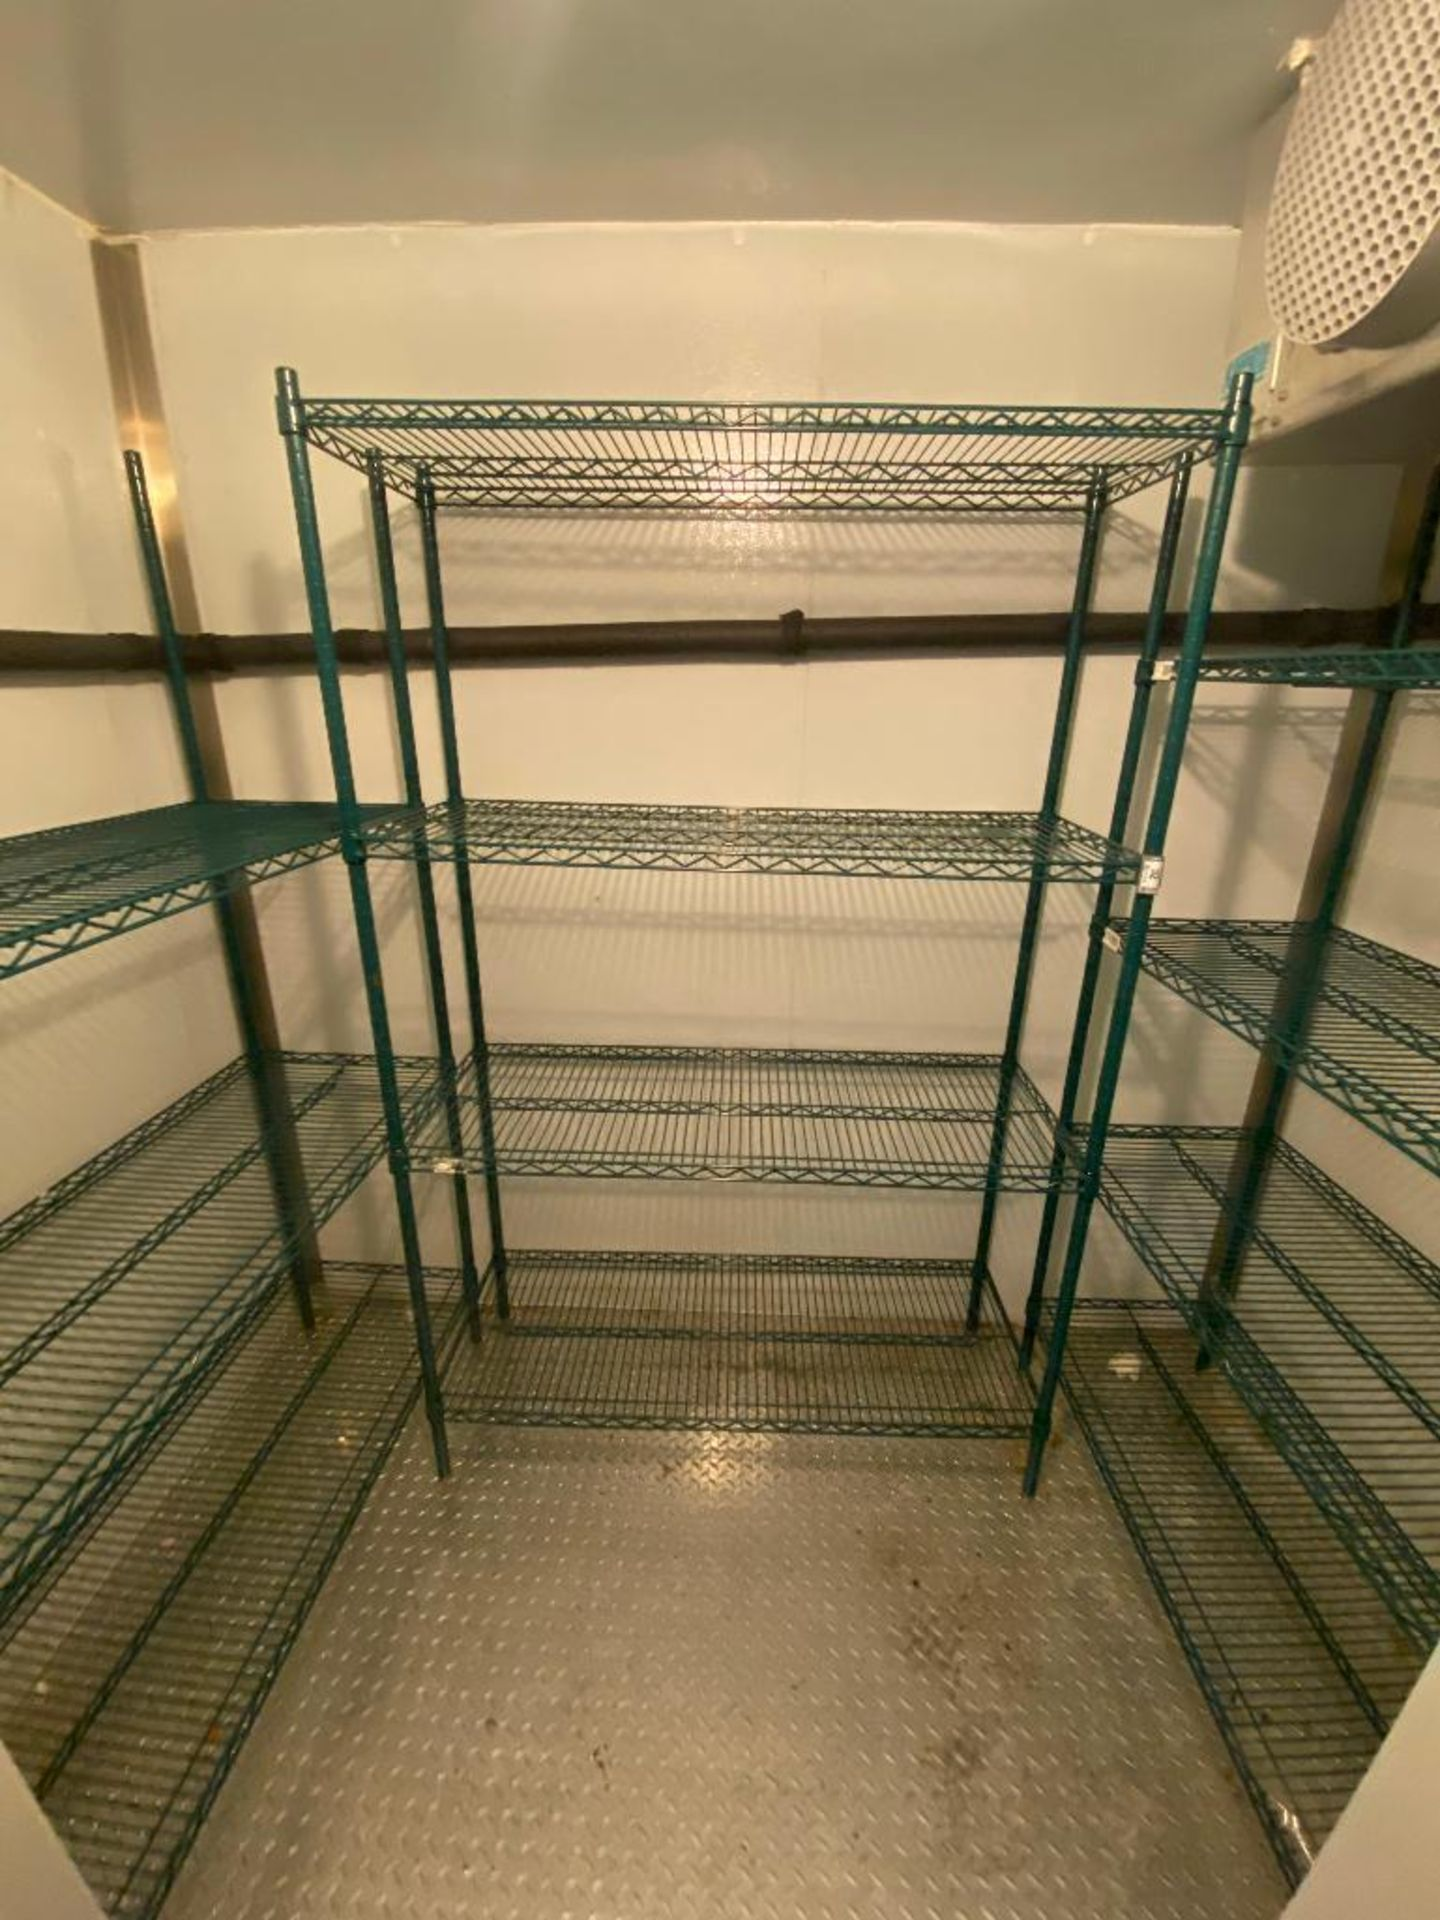 LOT OF (3) GREEN WIRE STORAGE RACKS, ASSORTED SIZES - Image 3 of 4